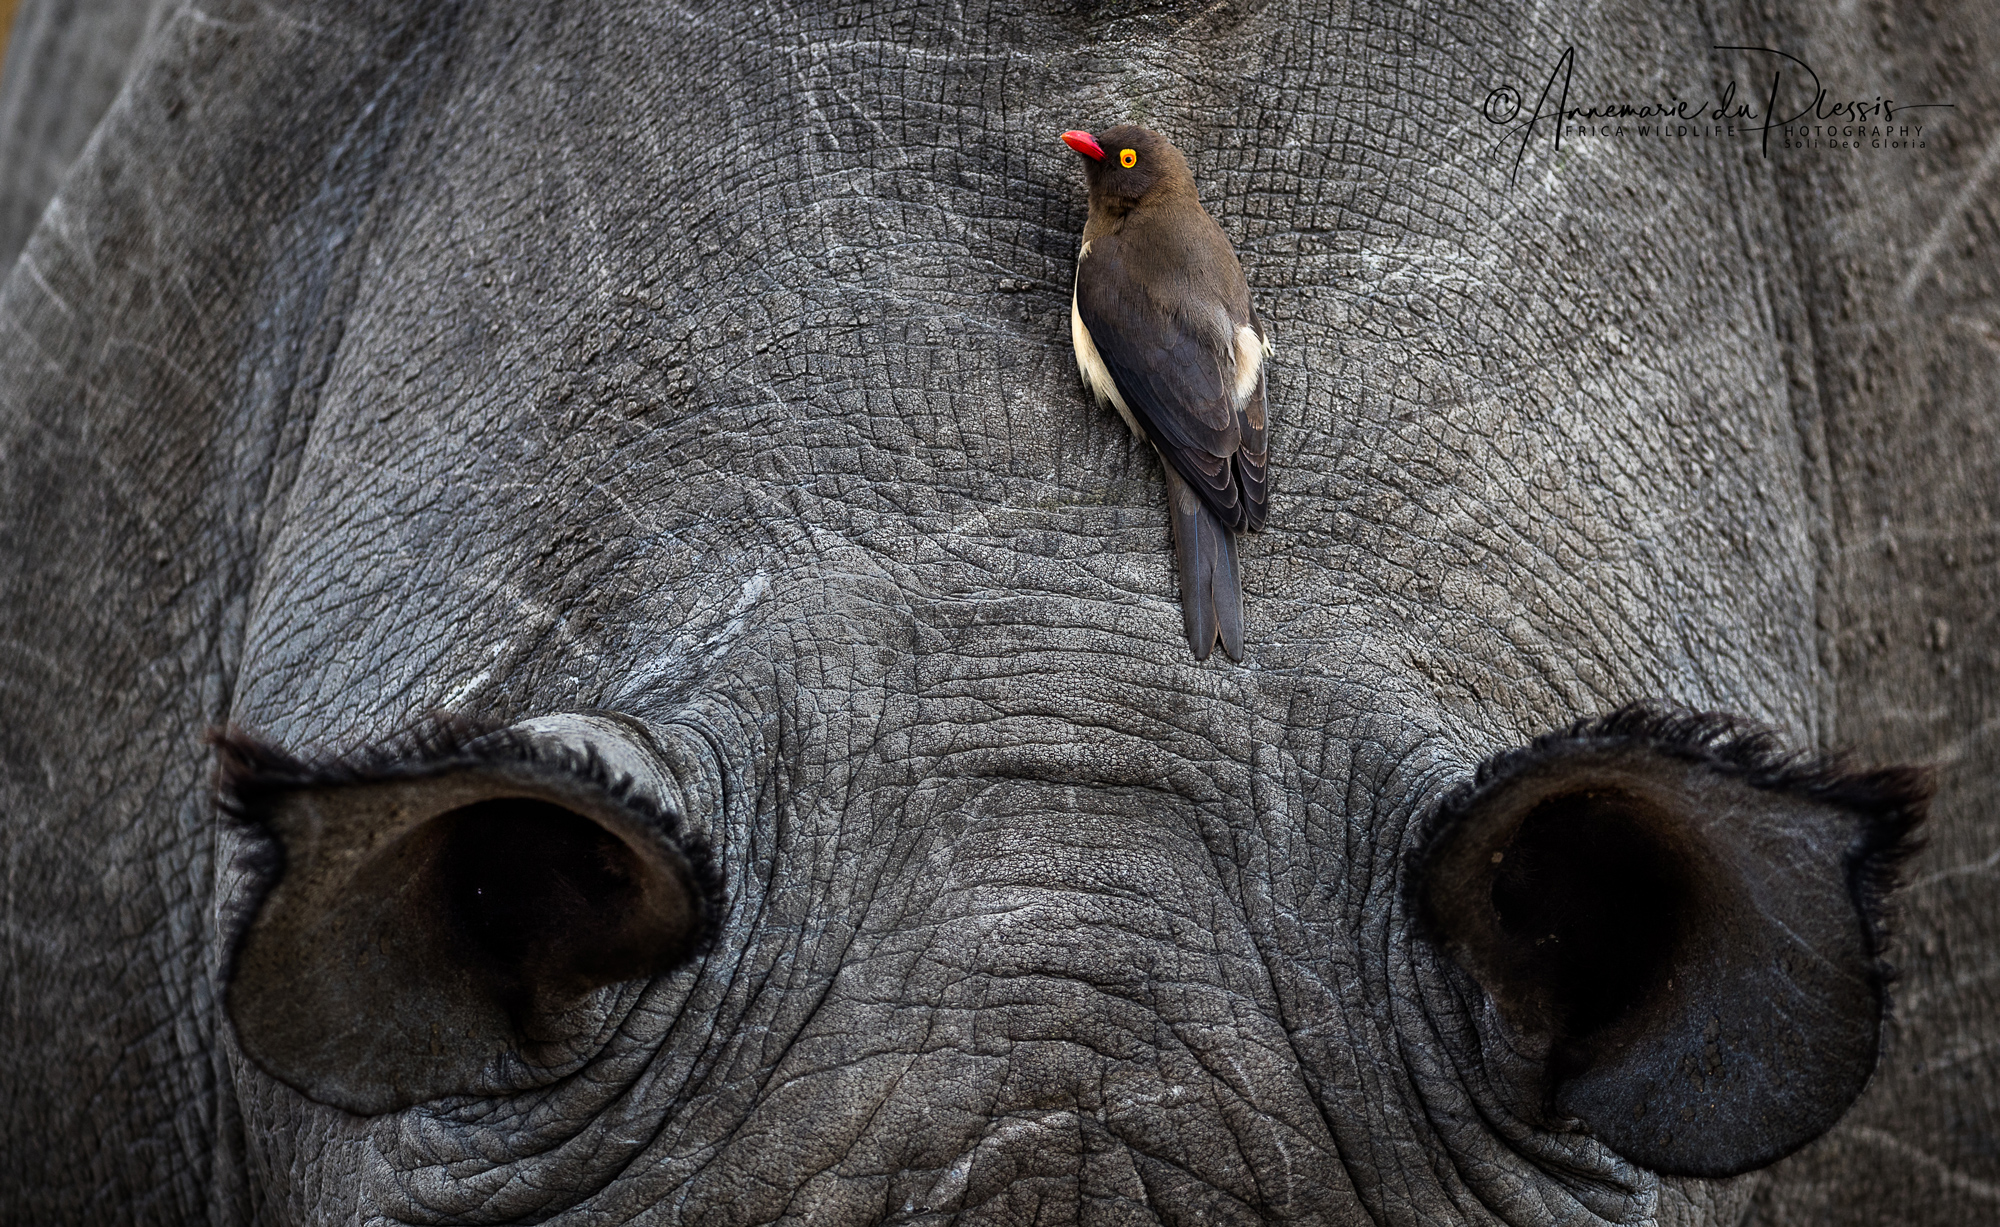 Oxpecker sitting on head of rhino